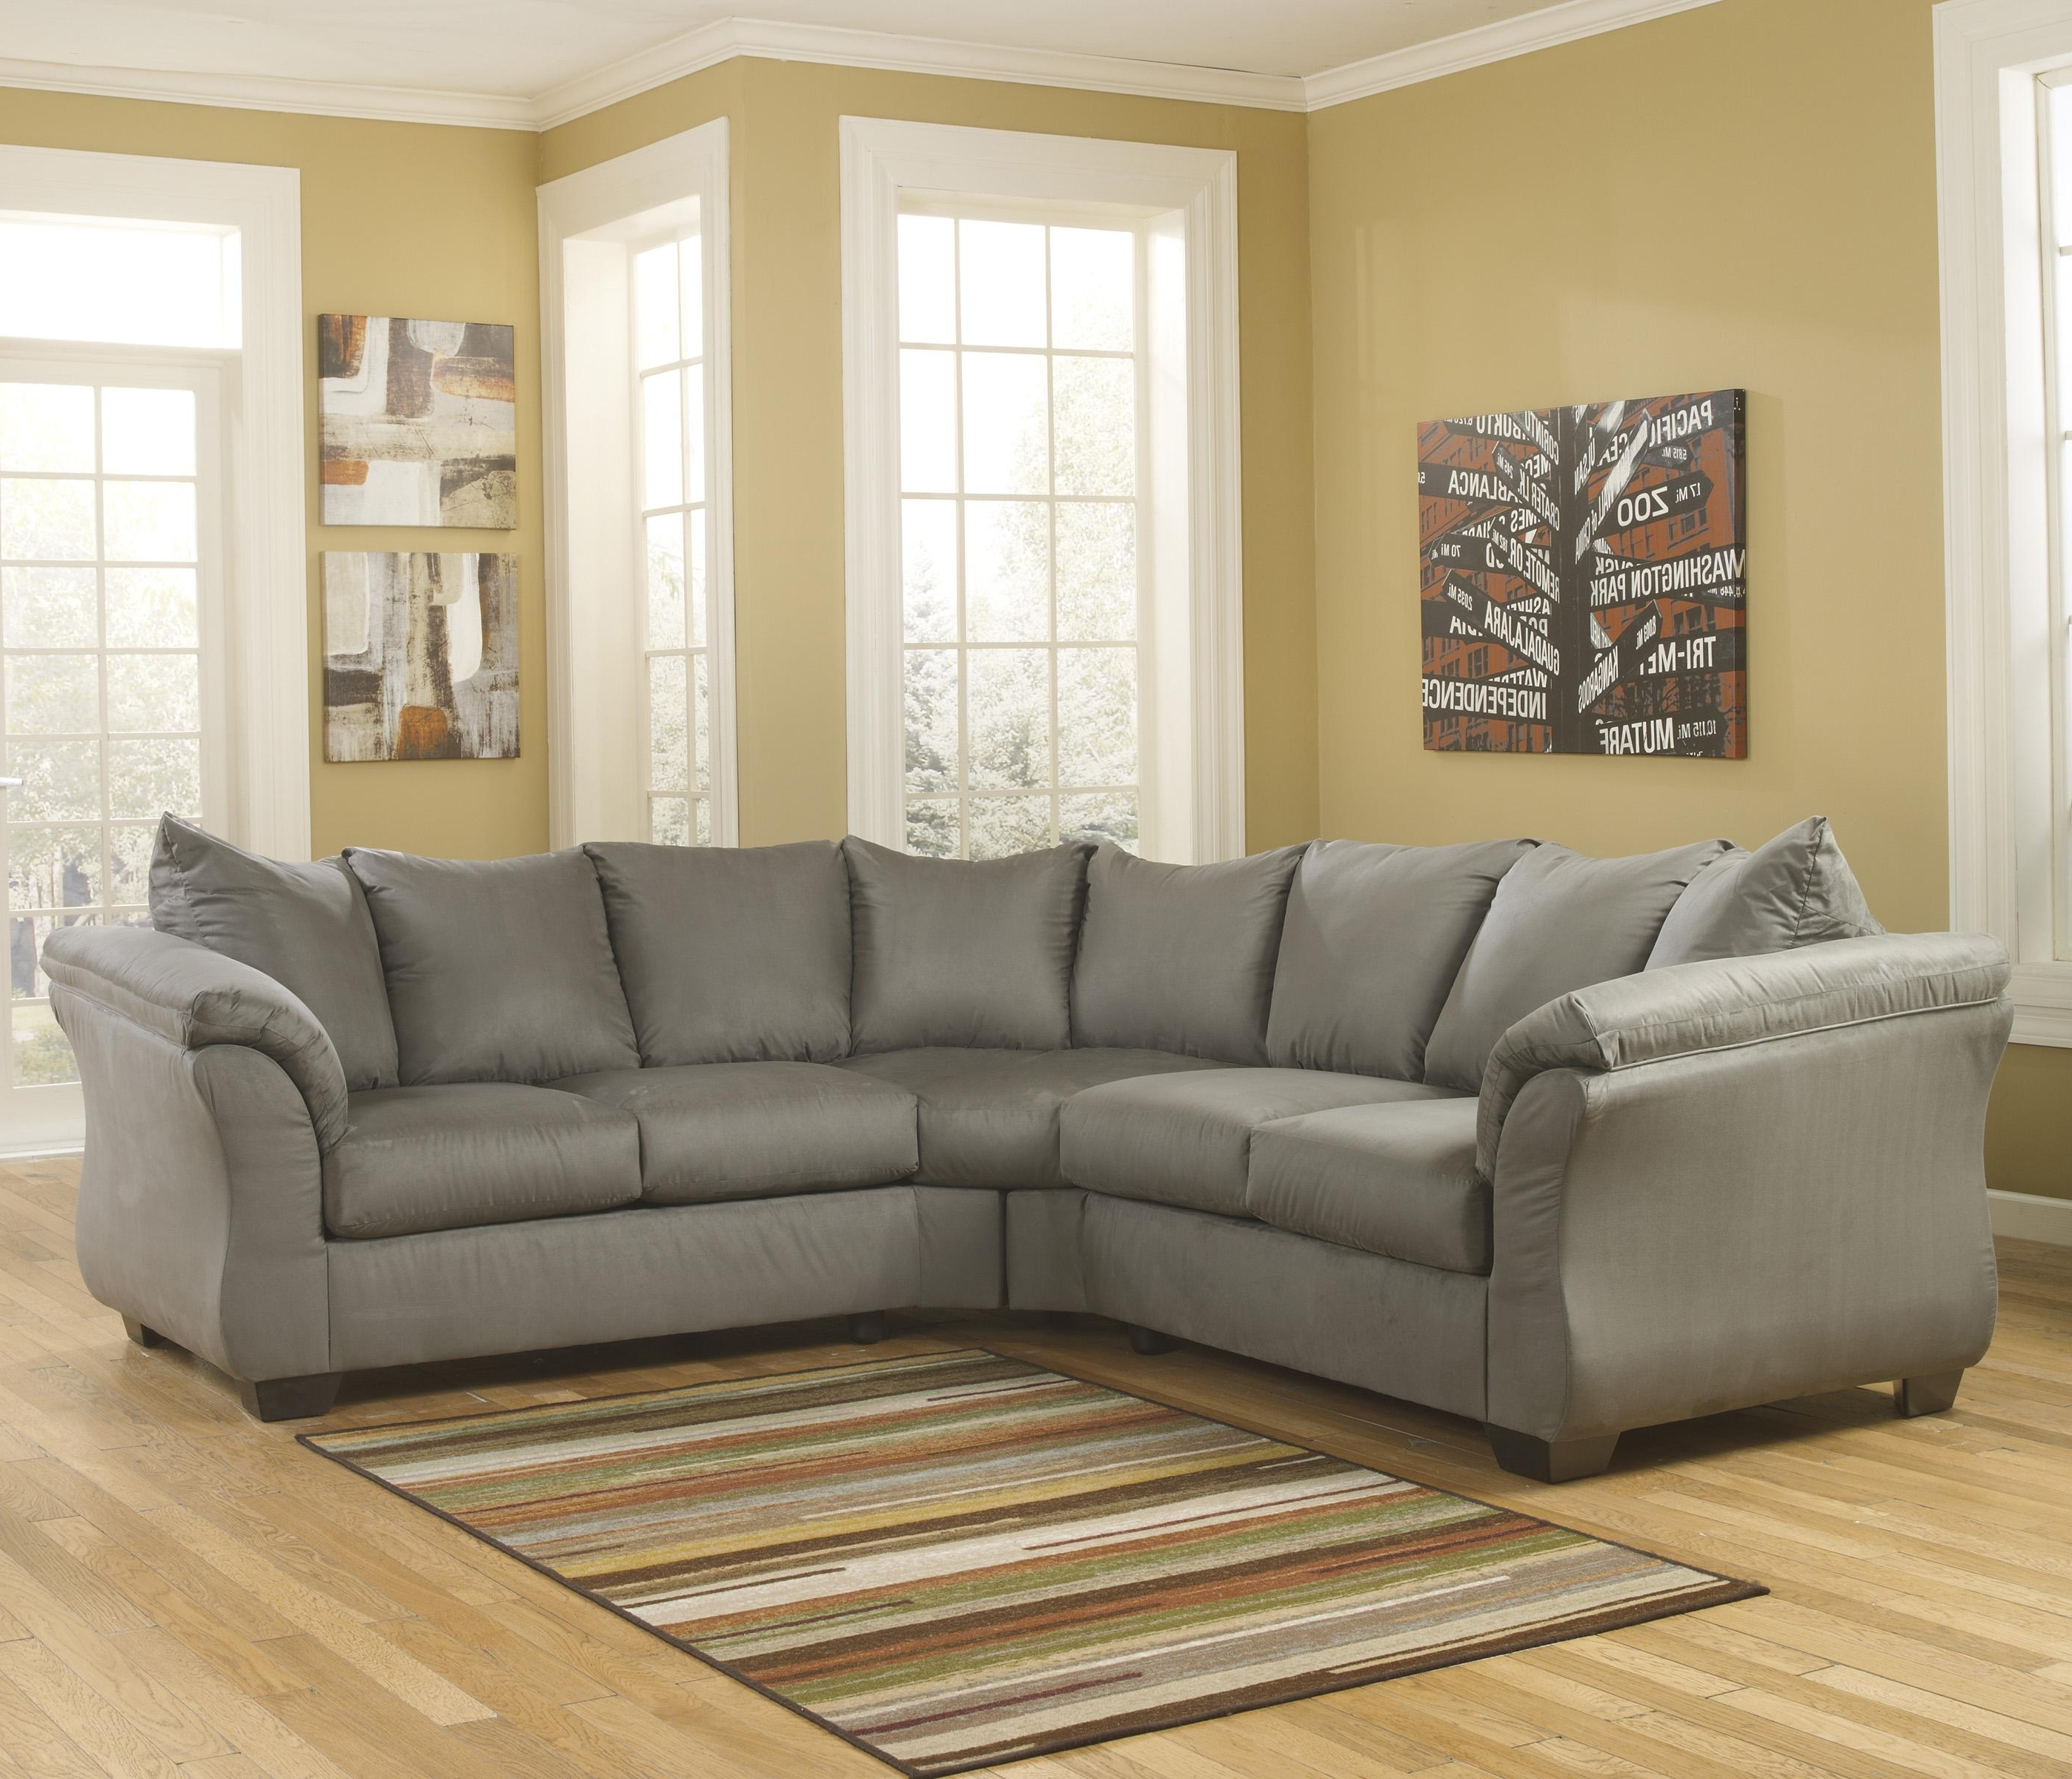 Best And Newest Signature Designashley Darcy – Cobblestone Contemporary Throughout 102X102 Sectional Sofas (View 6 of 15)